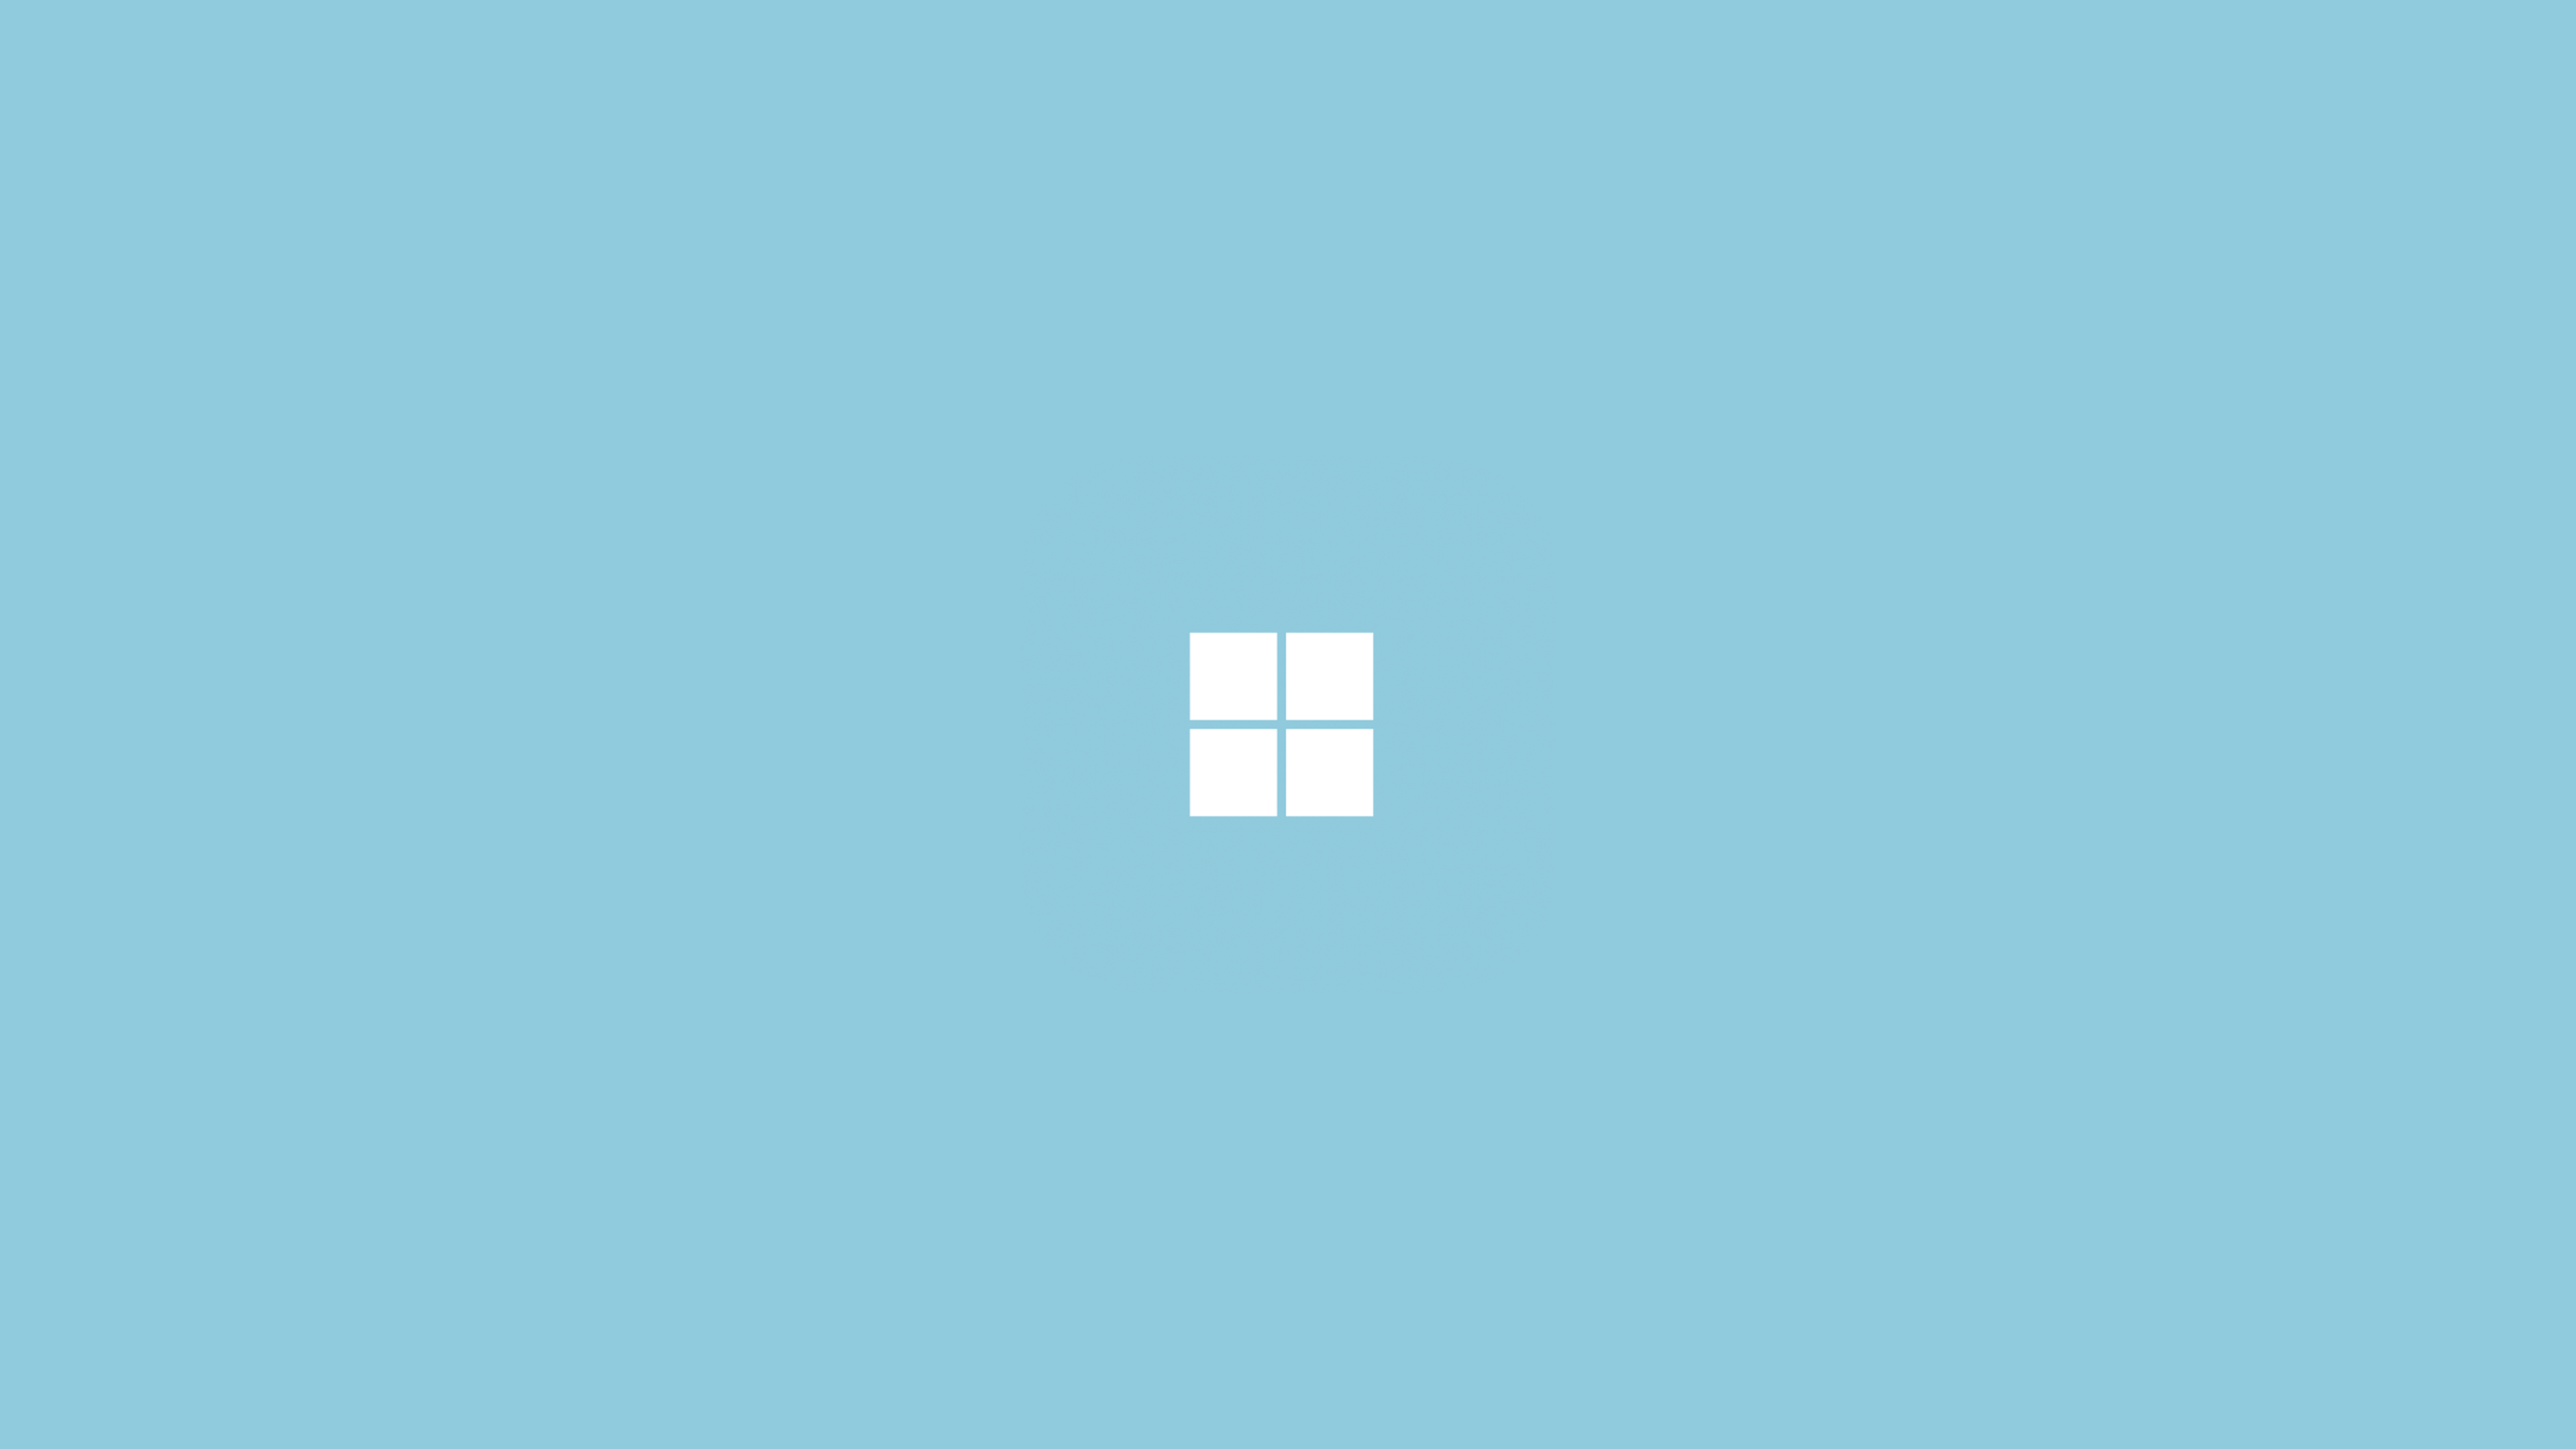 Minimal Windows Wallpapers Top Free Minimal Windows Backgrounds